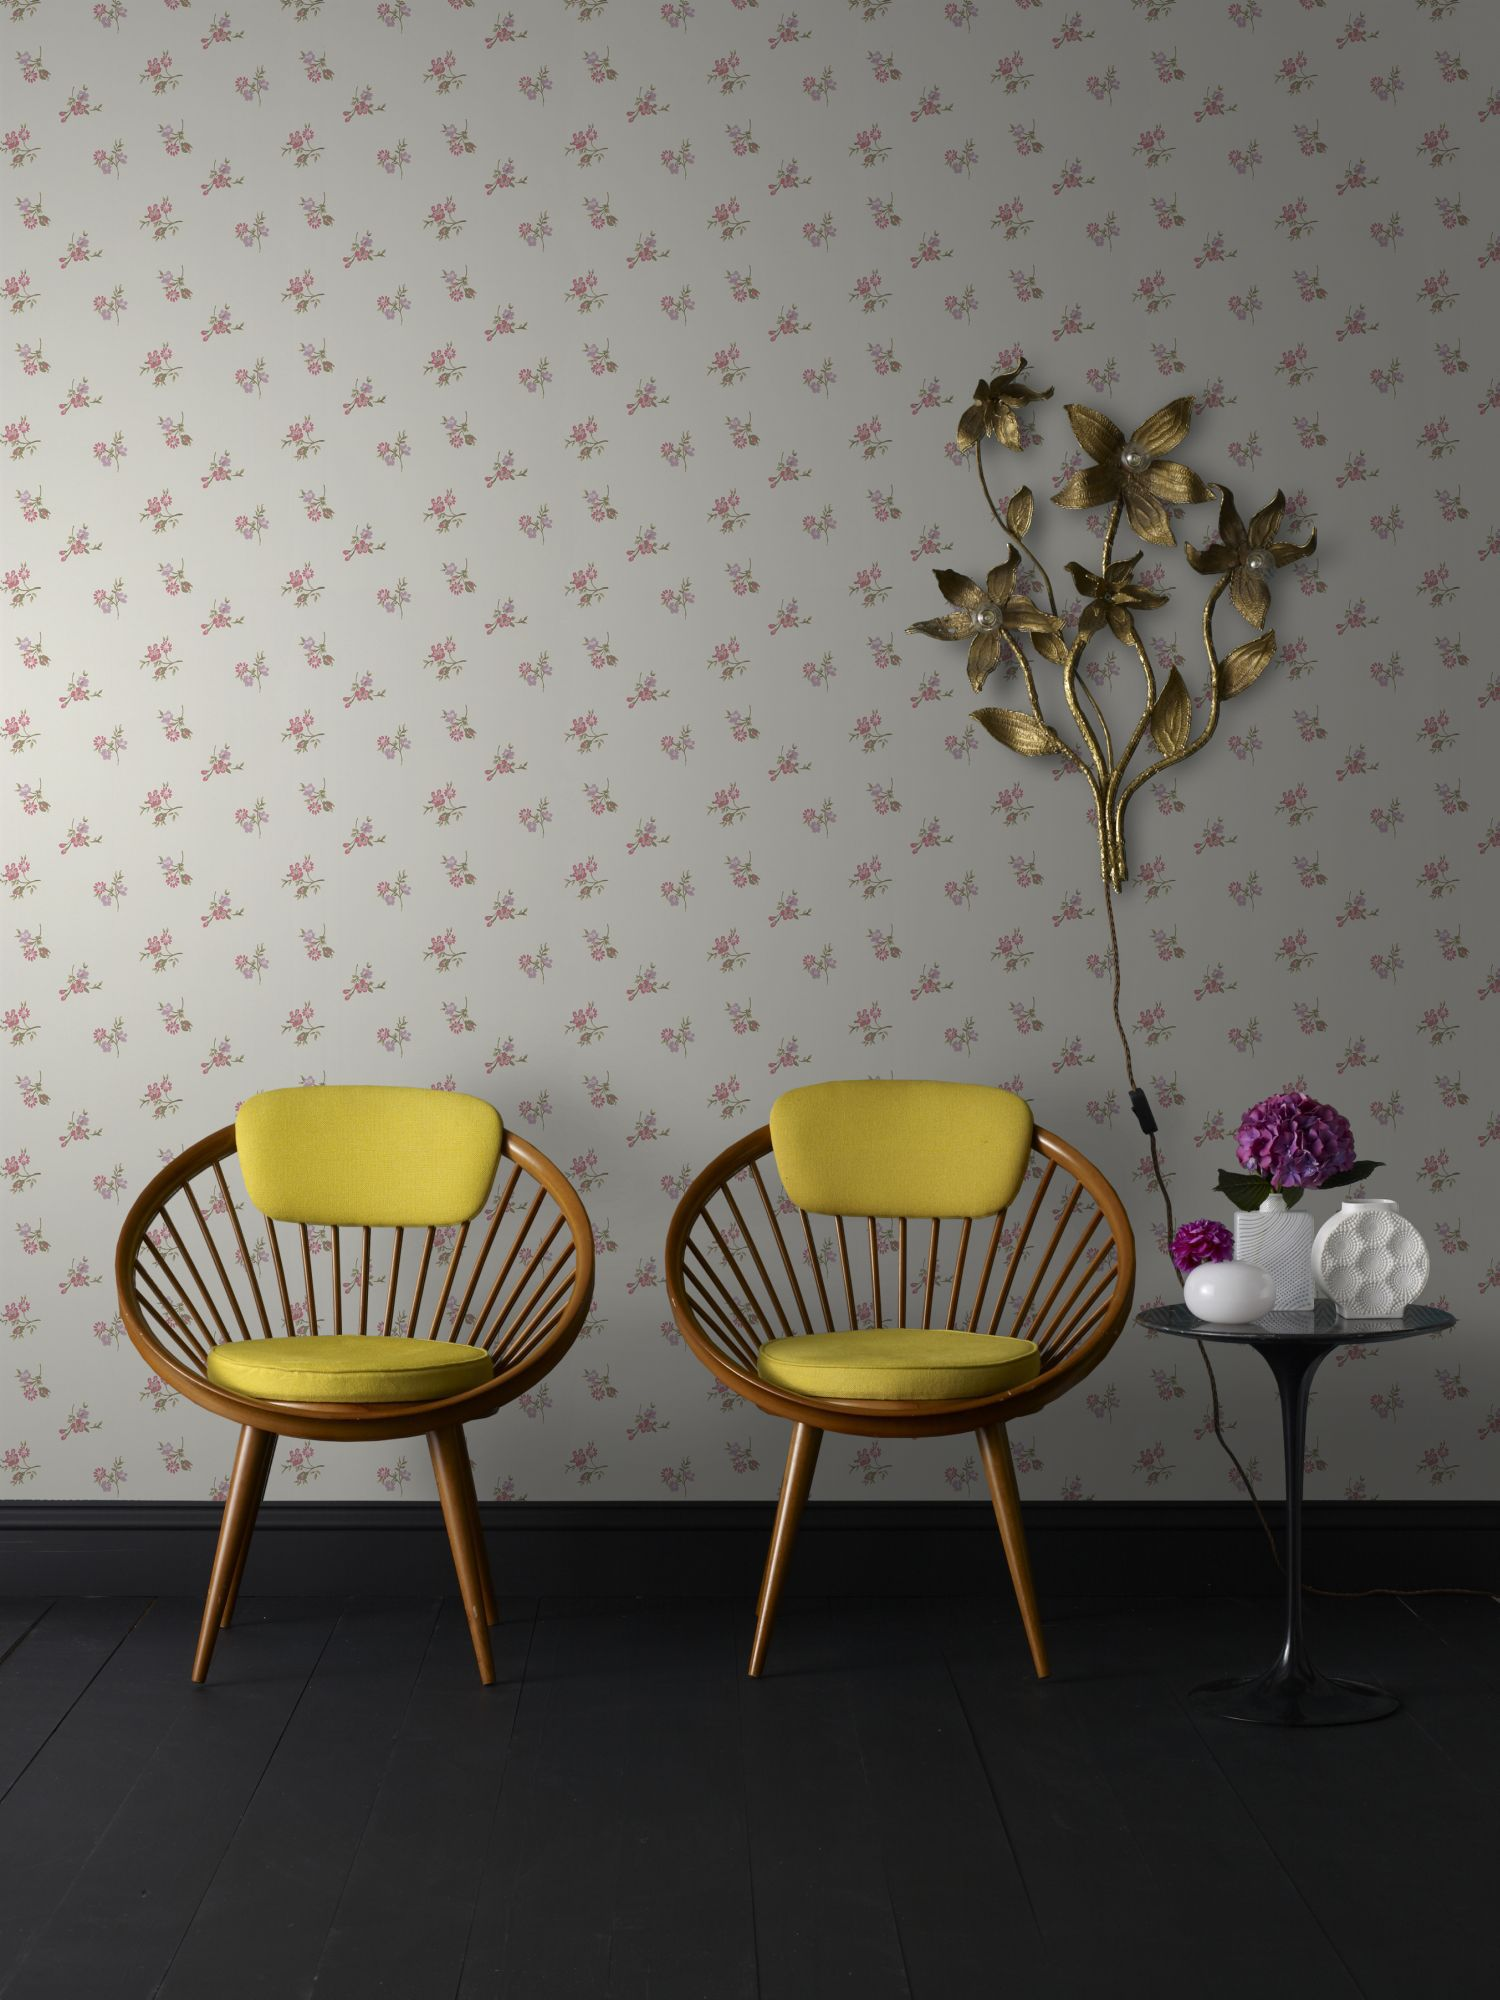 Light blue duckegg/pink/lilac rosebud wallpaper